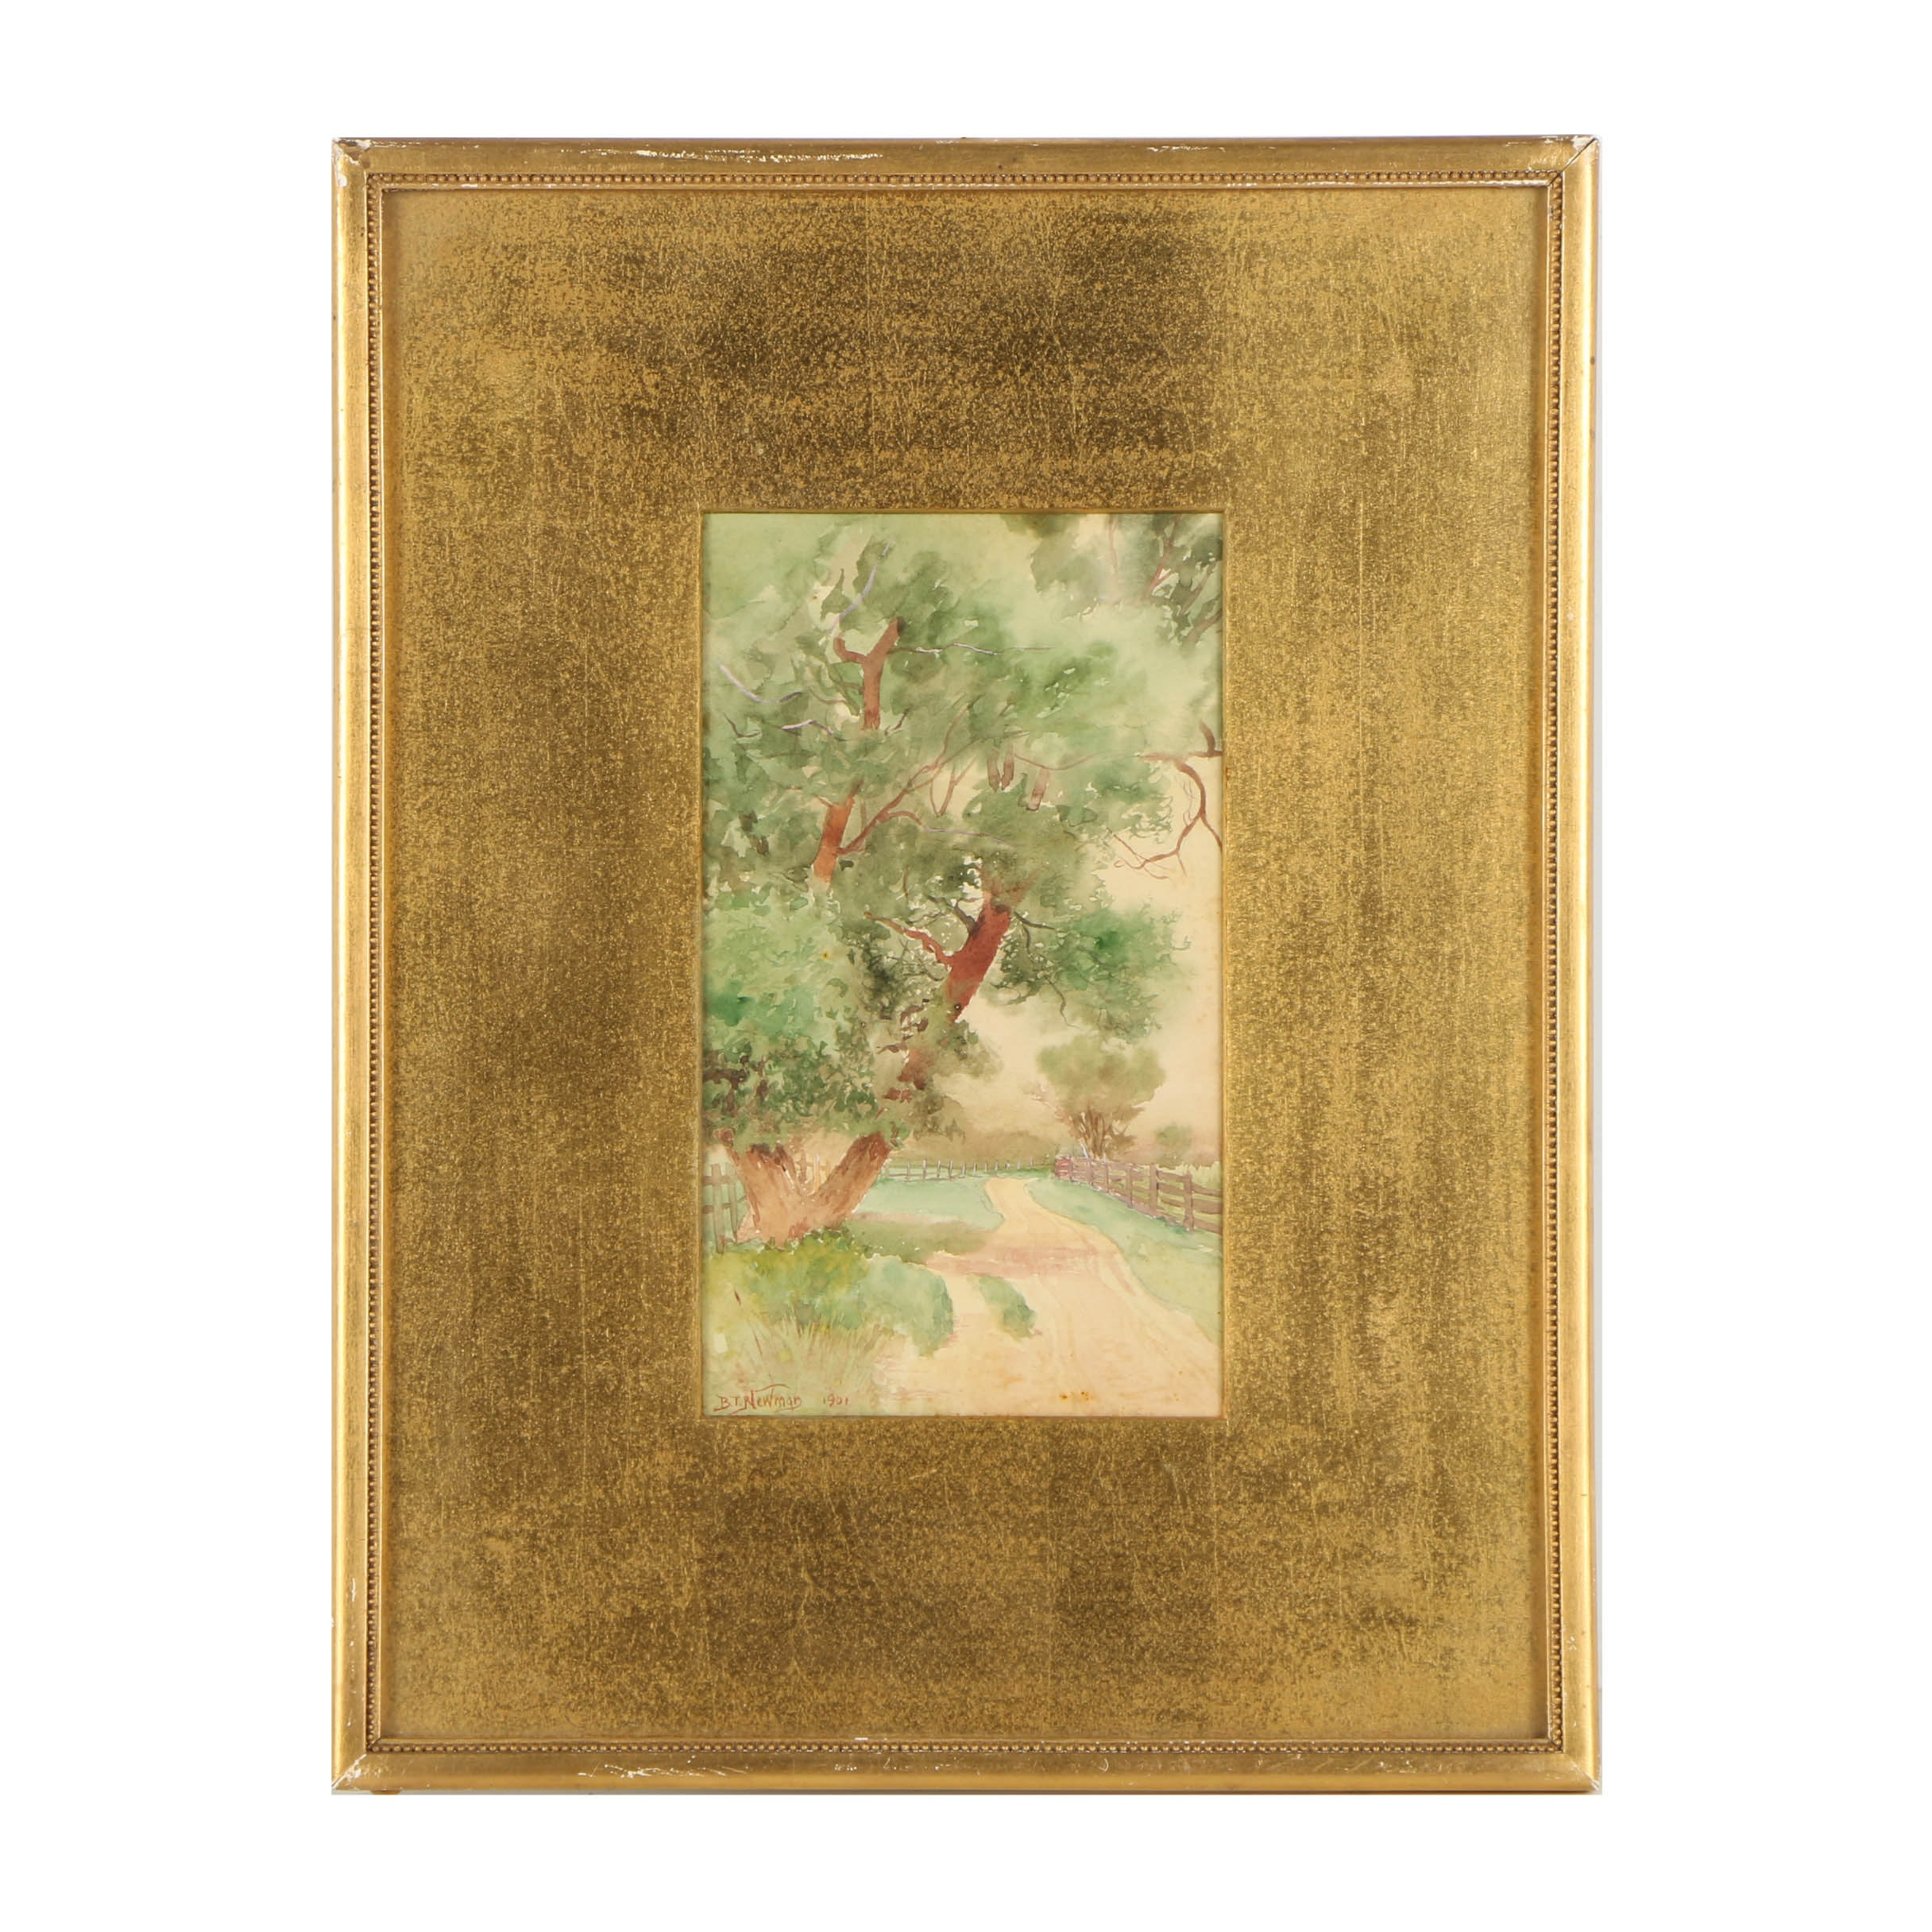 Benjamin Tupper Newman Watercolor Painting on Paper of Landscape